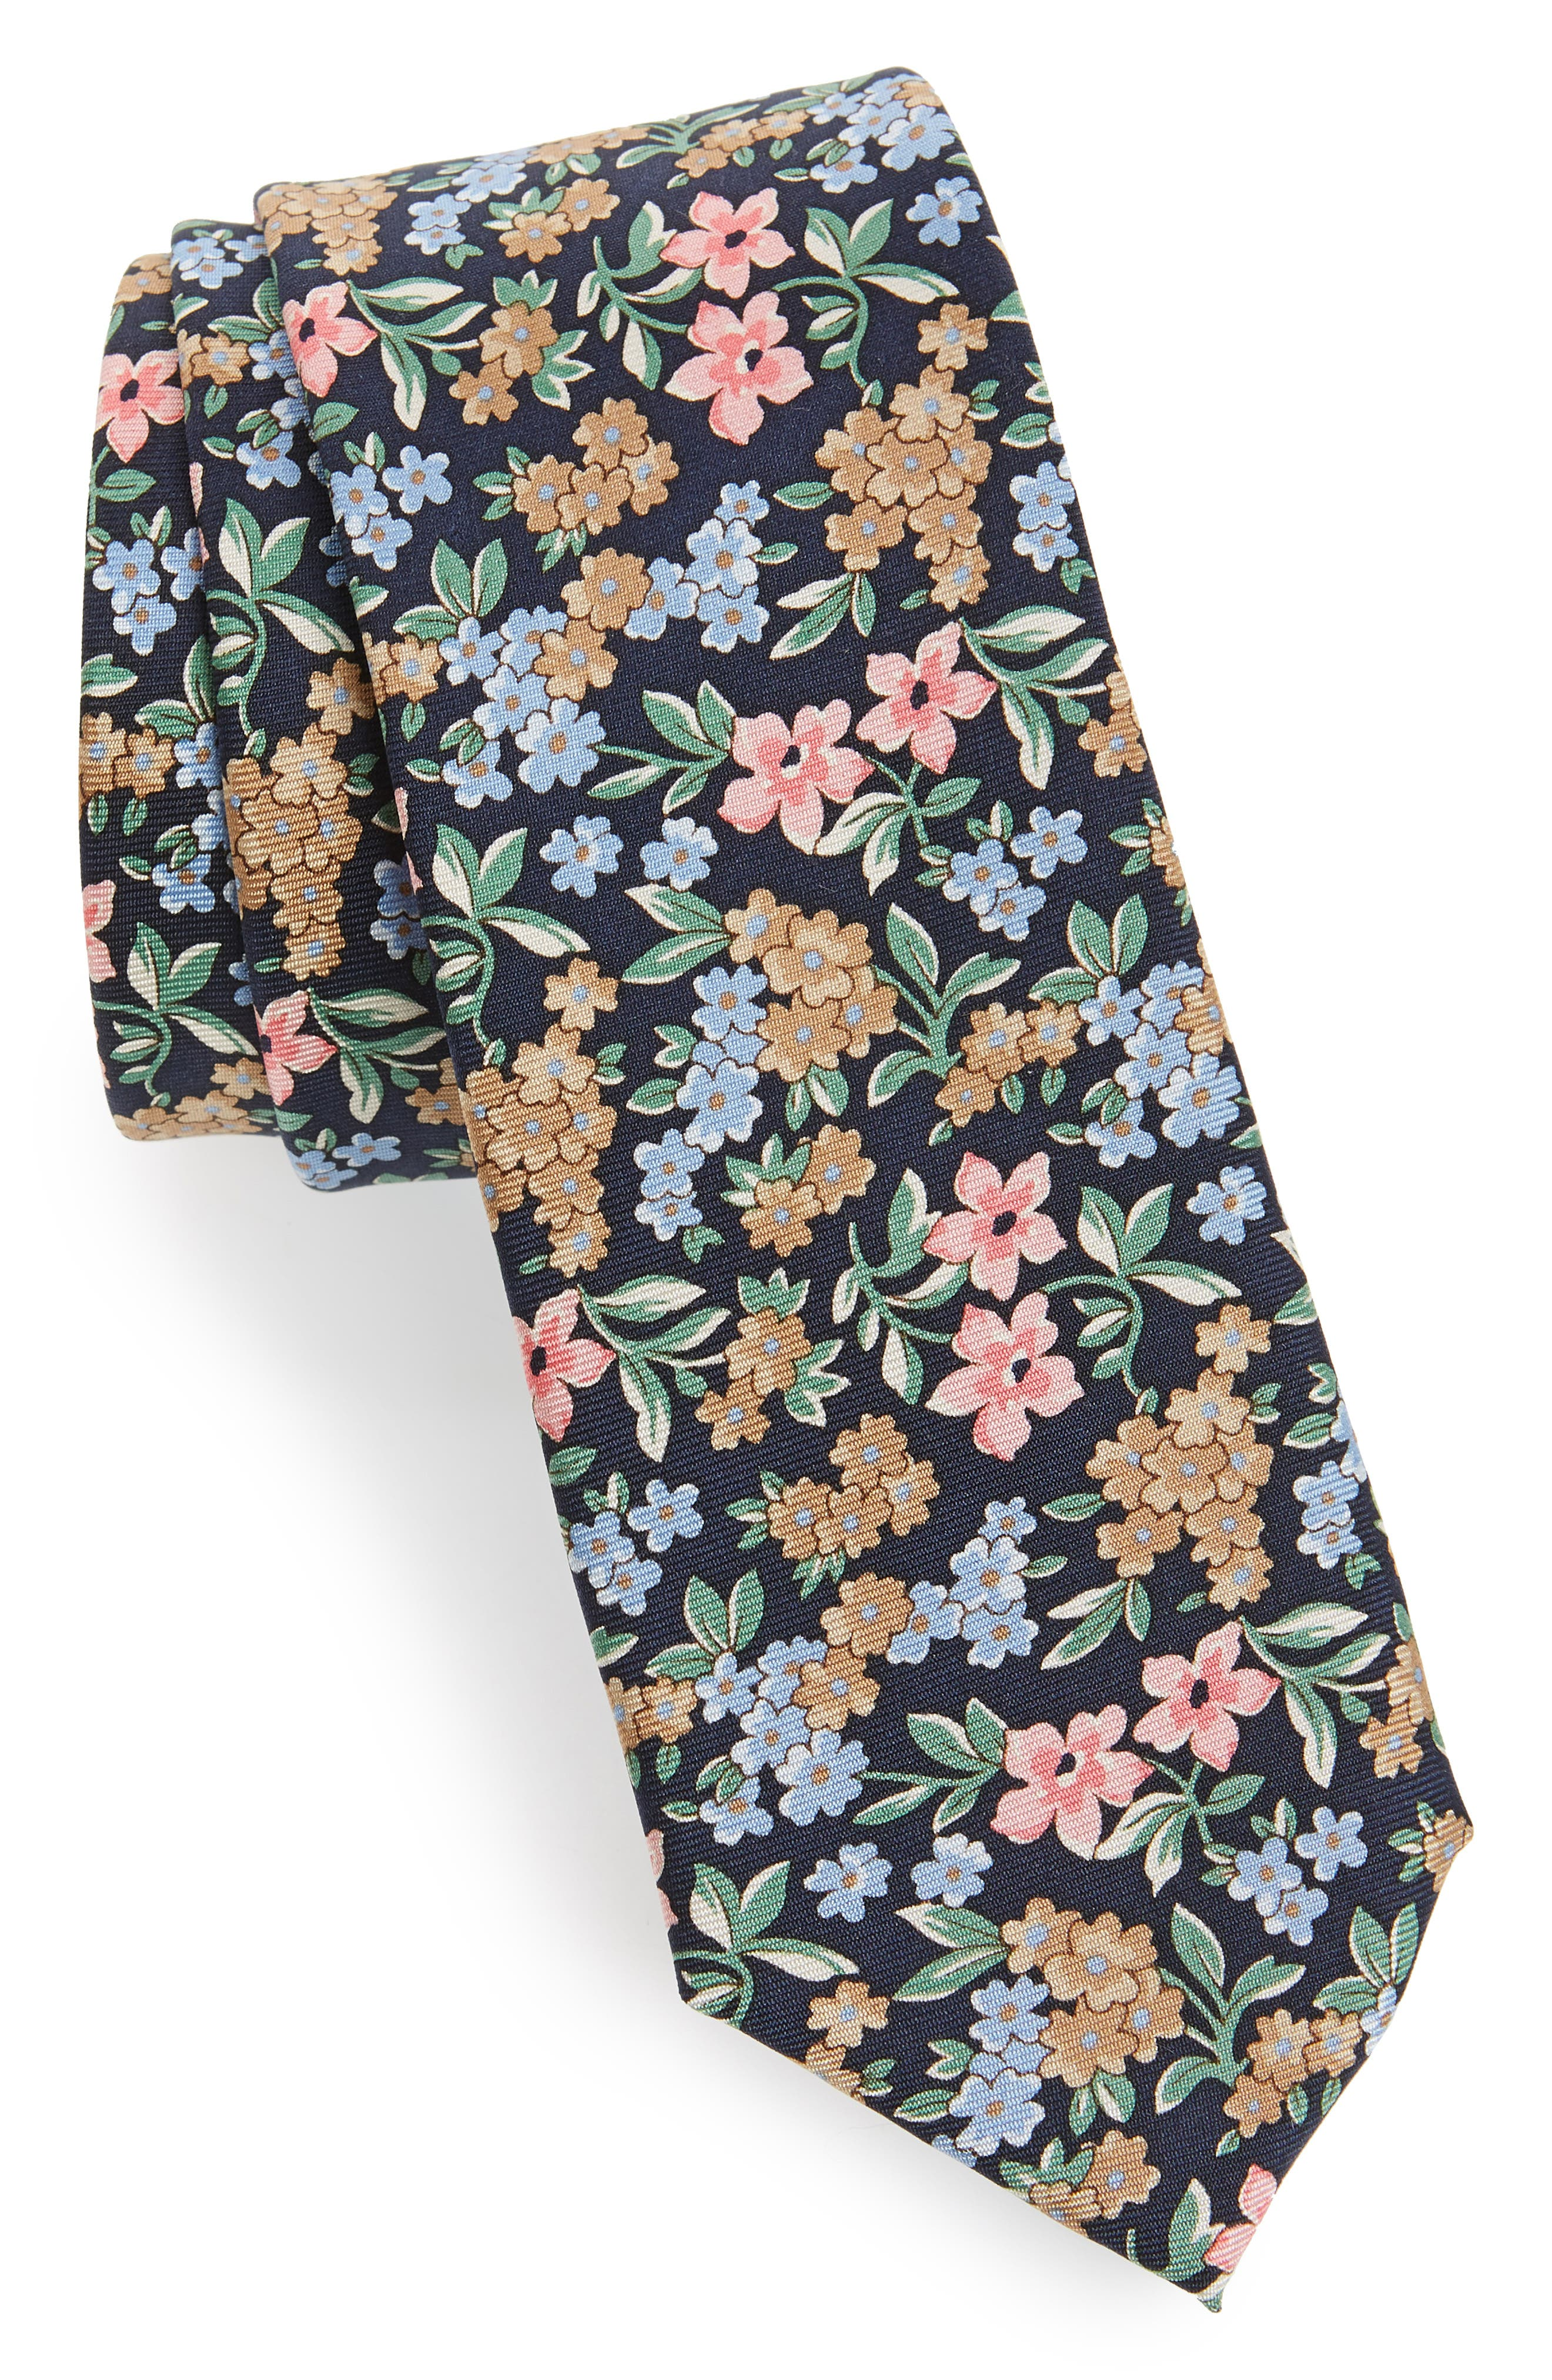 Cassidy Floral Silk Skinny Tie,                         Main,                         color, Navy